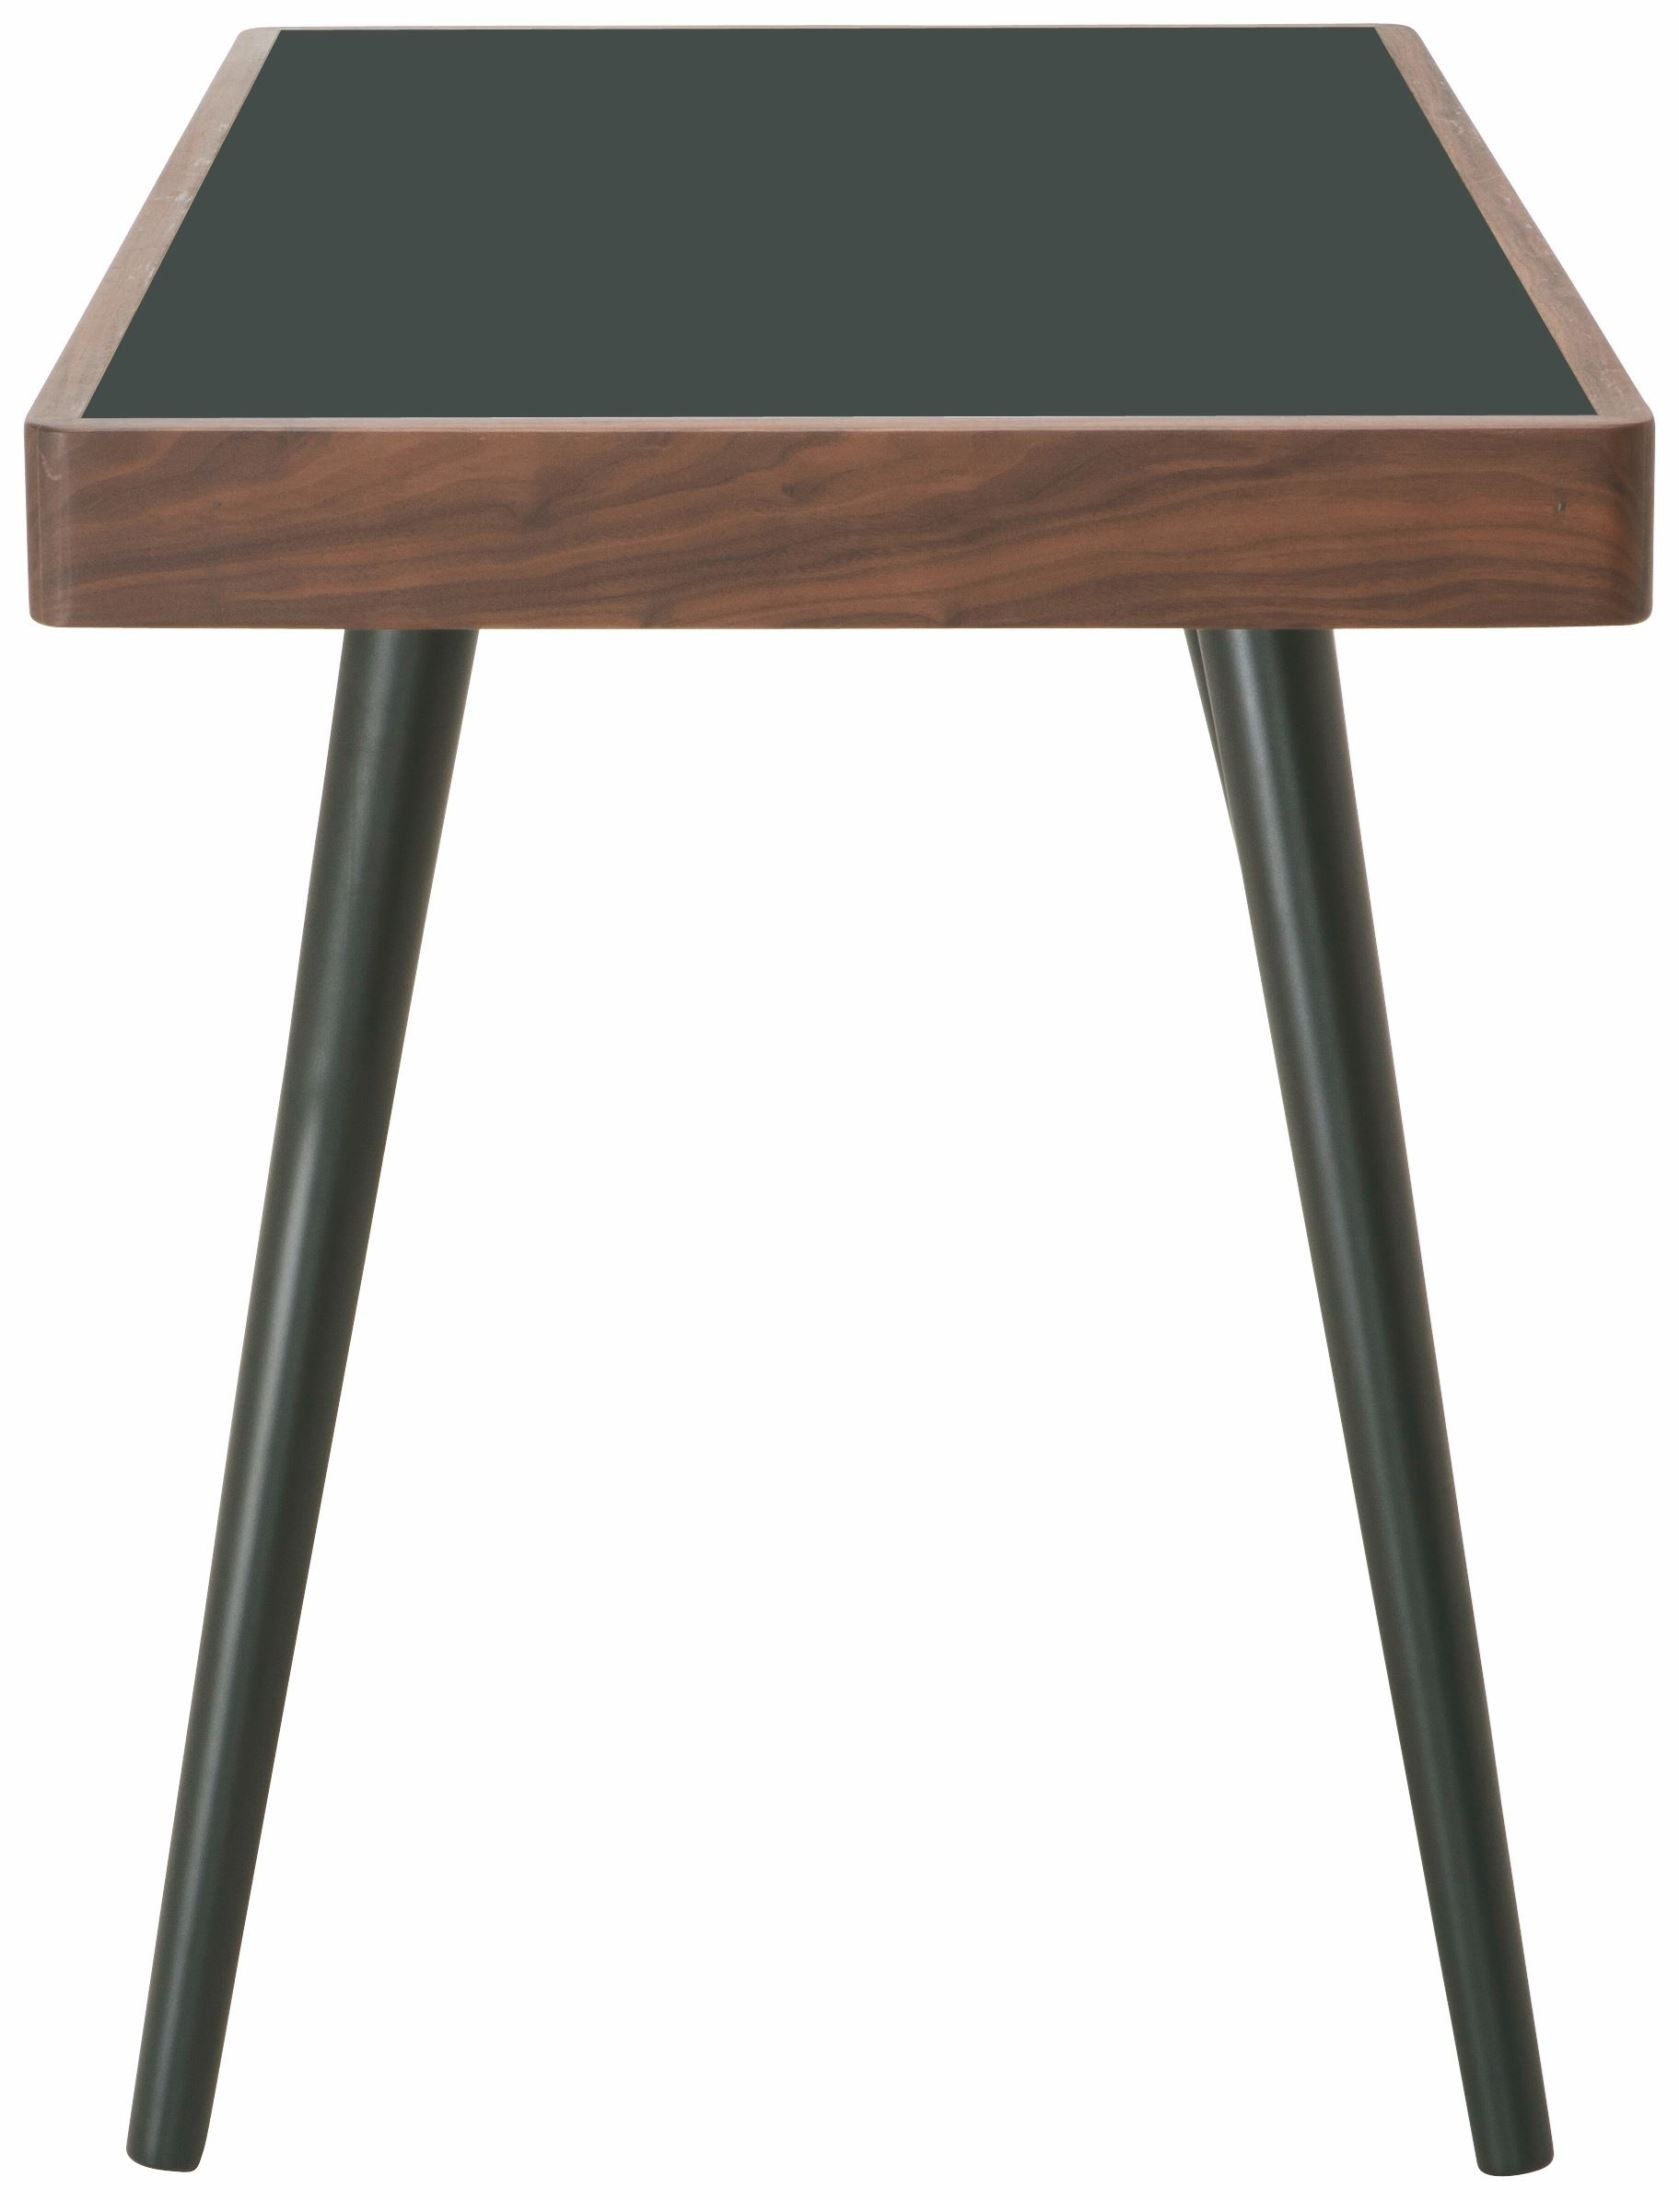 matte black melamine desk table hgem498 nuevo. Black Bedroom Furniture Sets. Home Design Ideas